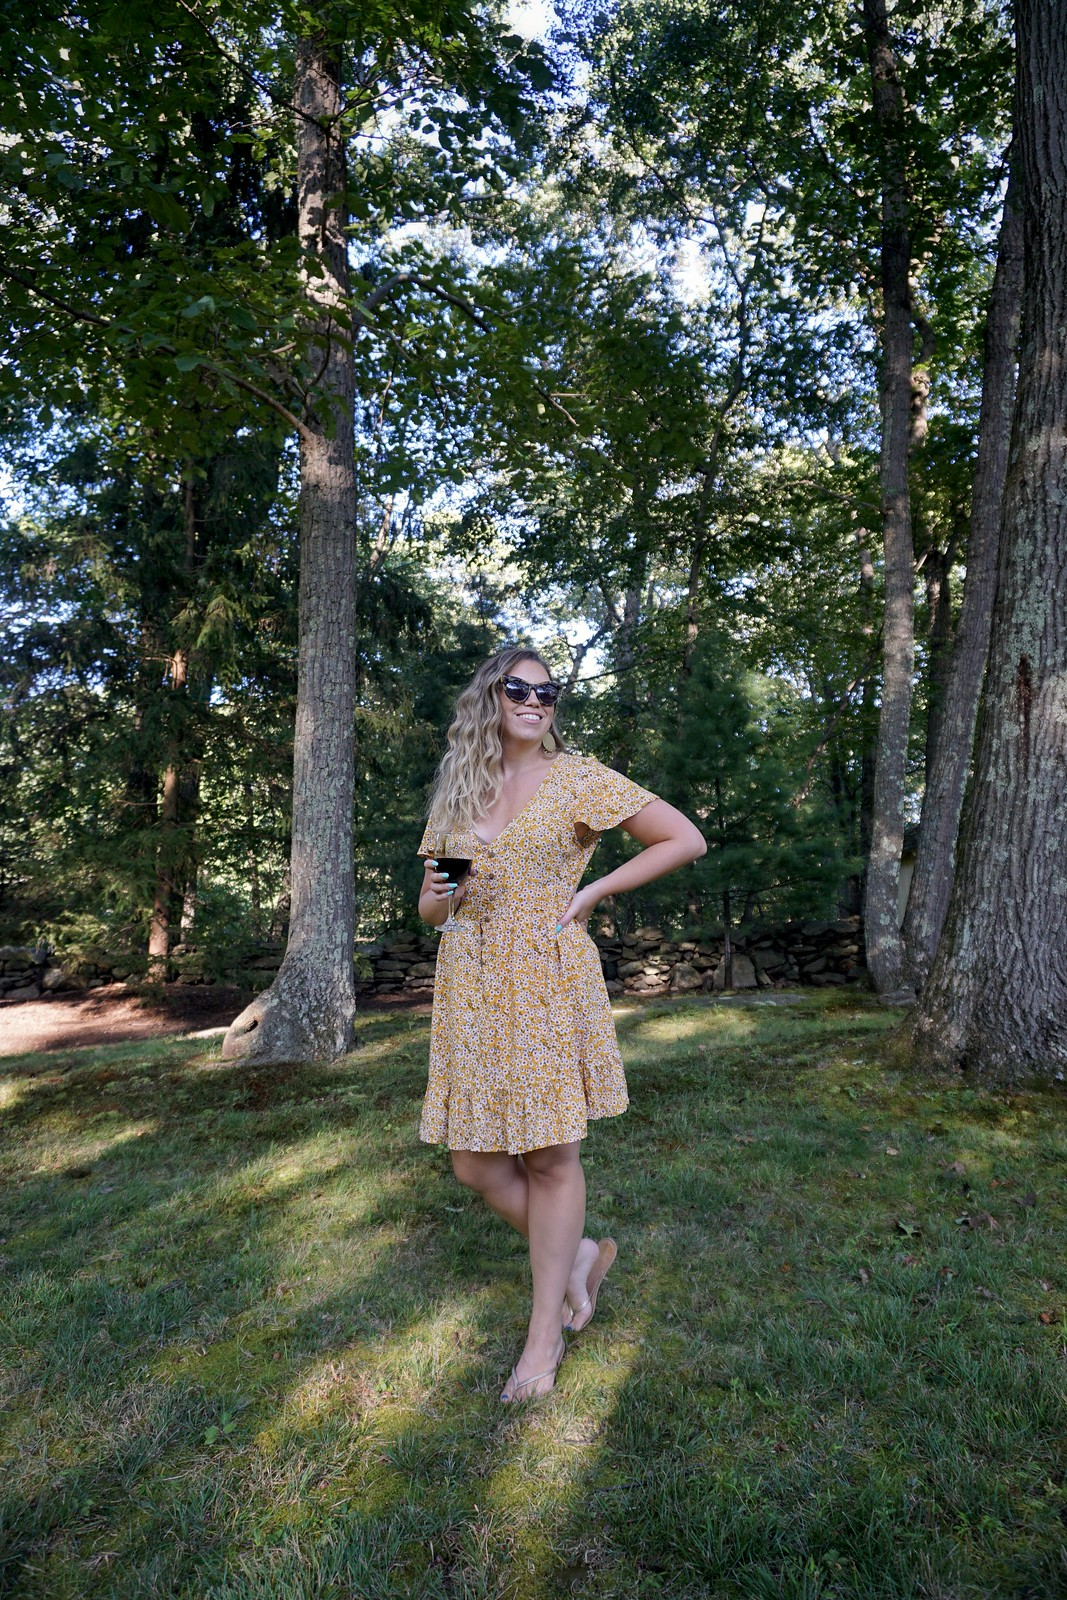 Shein Ditsy Floral Print Dress | Casual Weekend Wear | Labor Day Weekend Outfit | Upstate Life | August 2019 Round Up